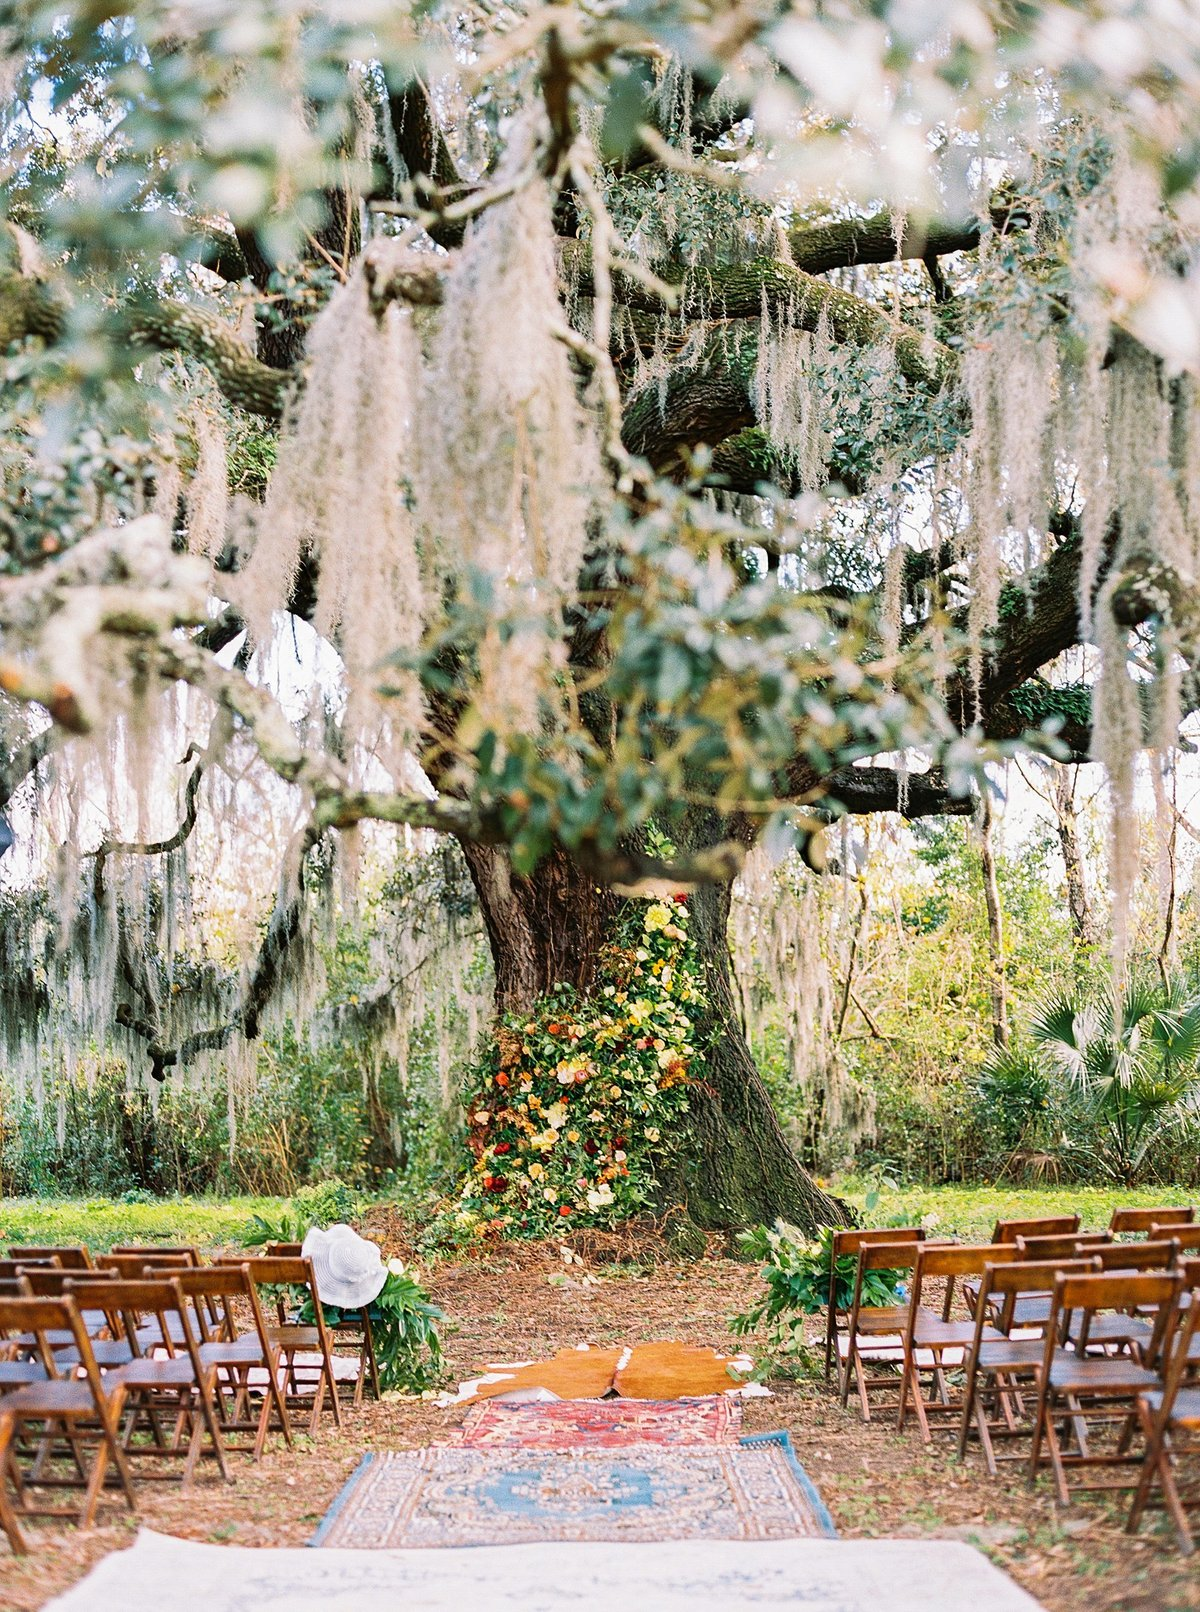 Vintage rugs line the aisle of an outdoor wedding.